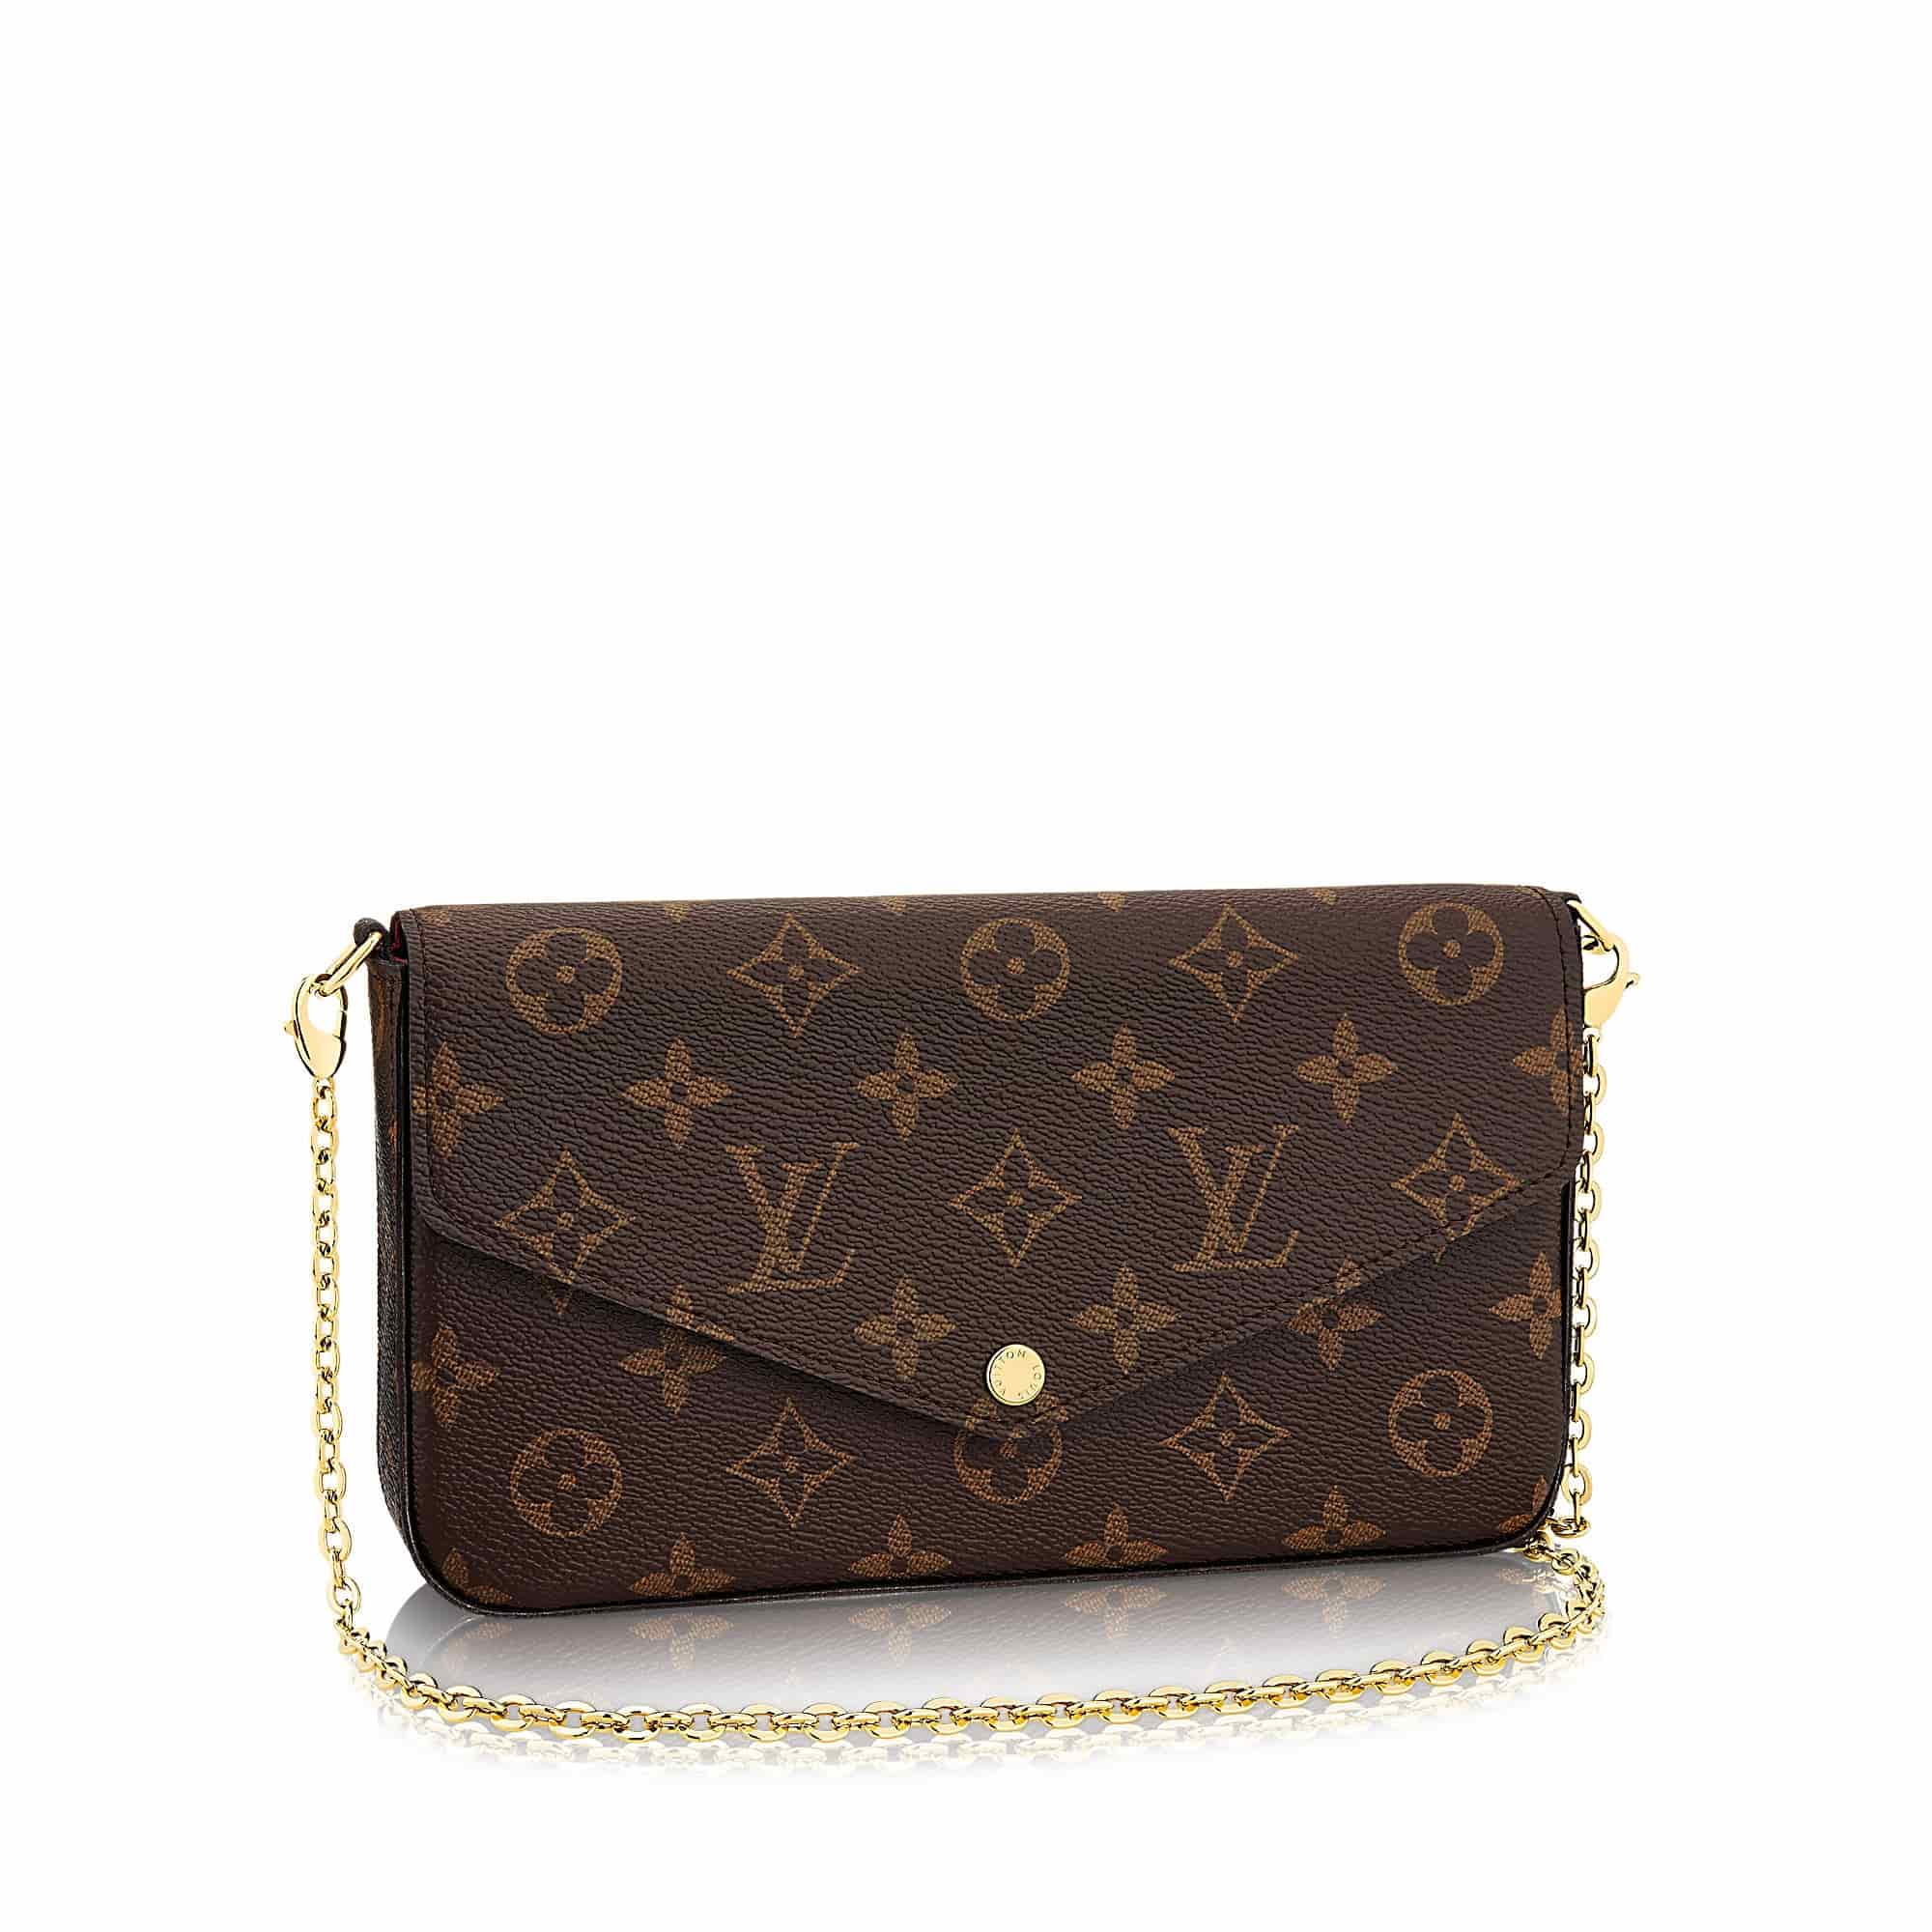 prices of louis vuitton handbags in india handbags 2018